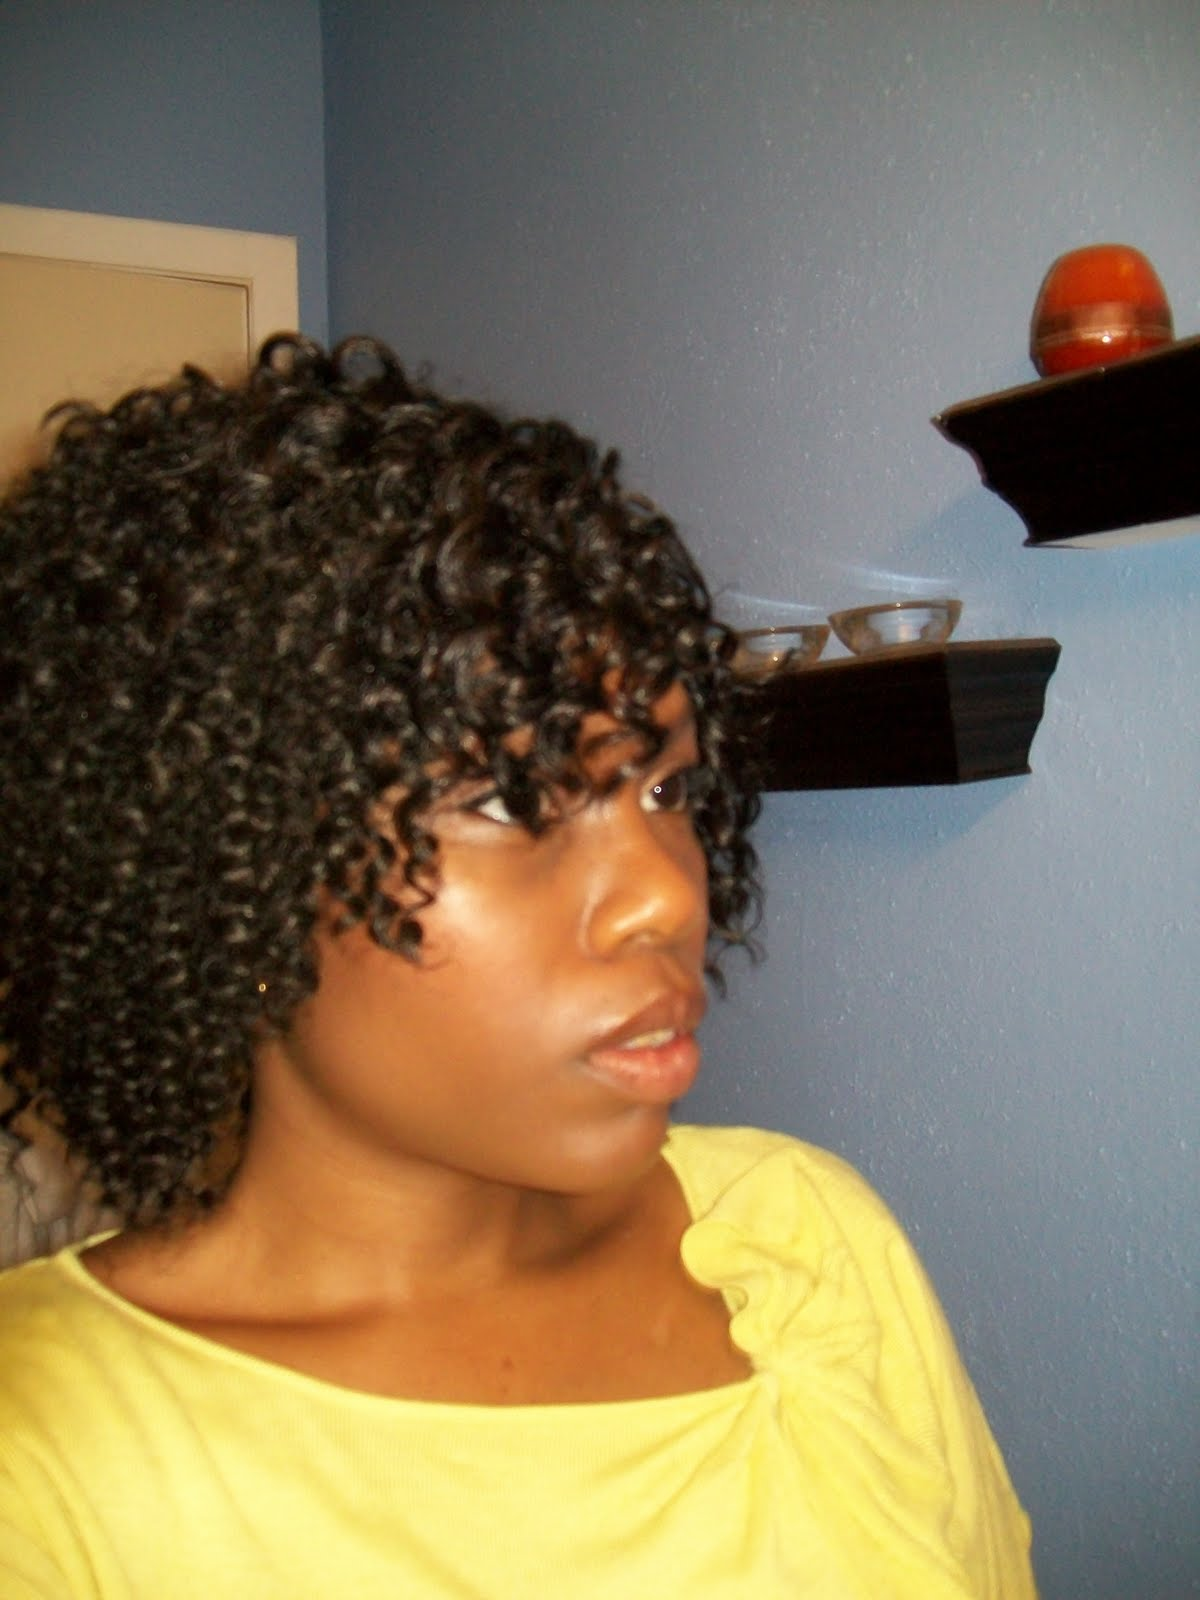 Crochet Braids Presto Curl : Crochet Braids Houston Salon newhairstylesformen2014.com